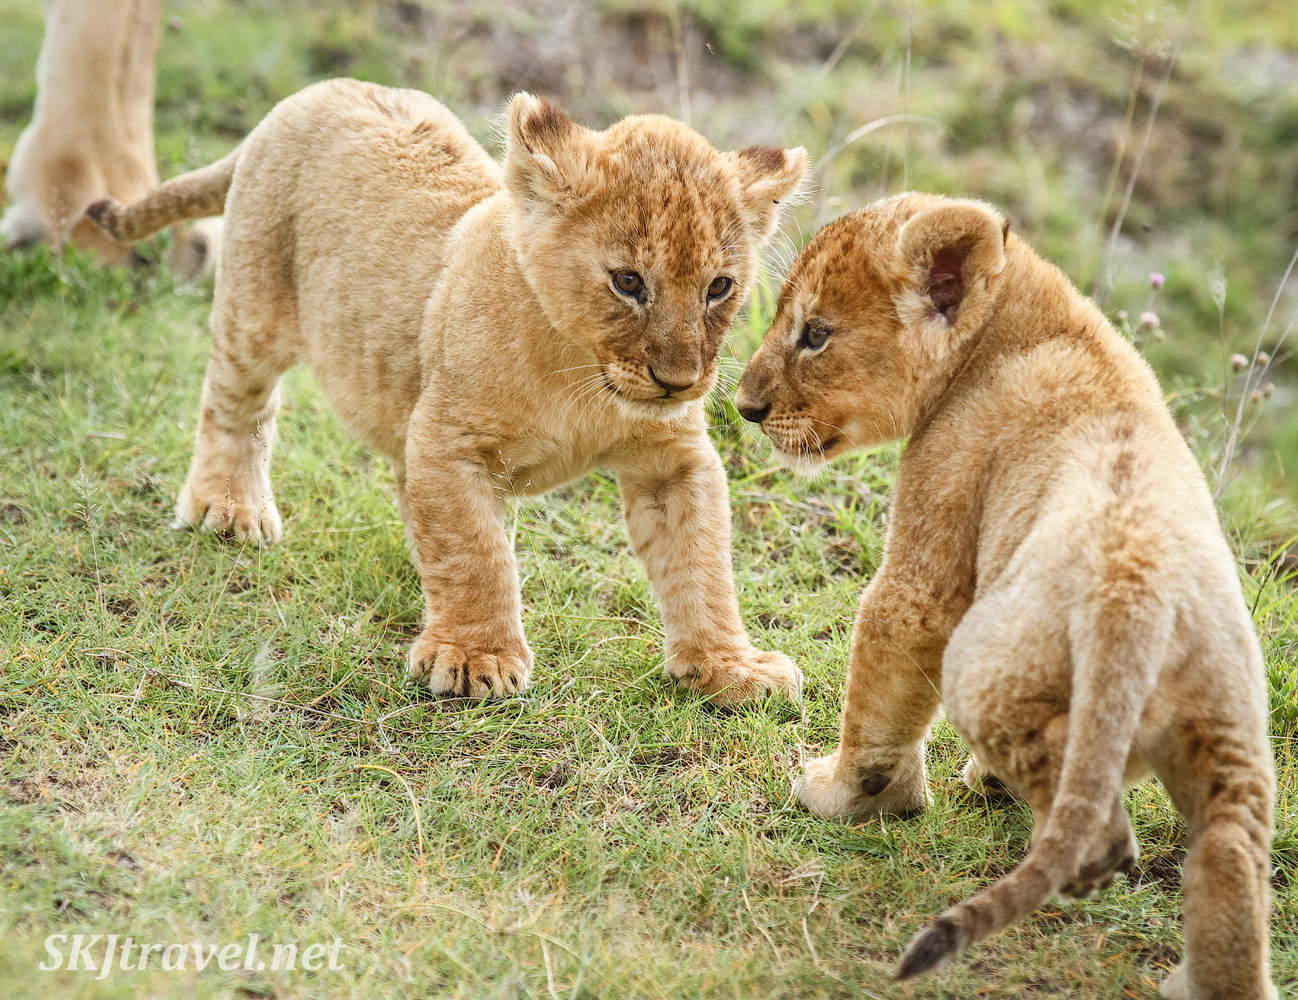 One lion cub wanting to tussle with his sibling. Ndutu, Tanzania.